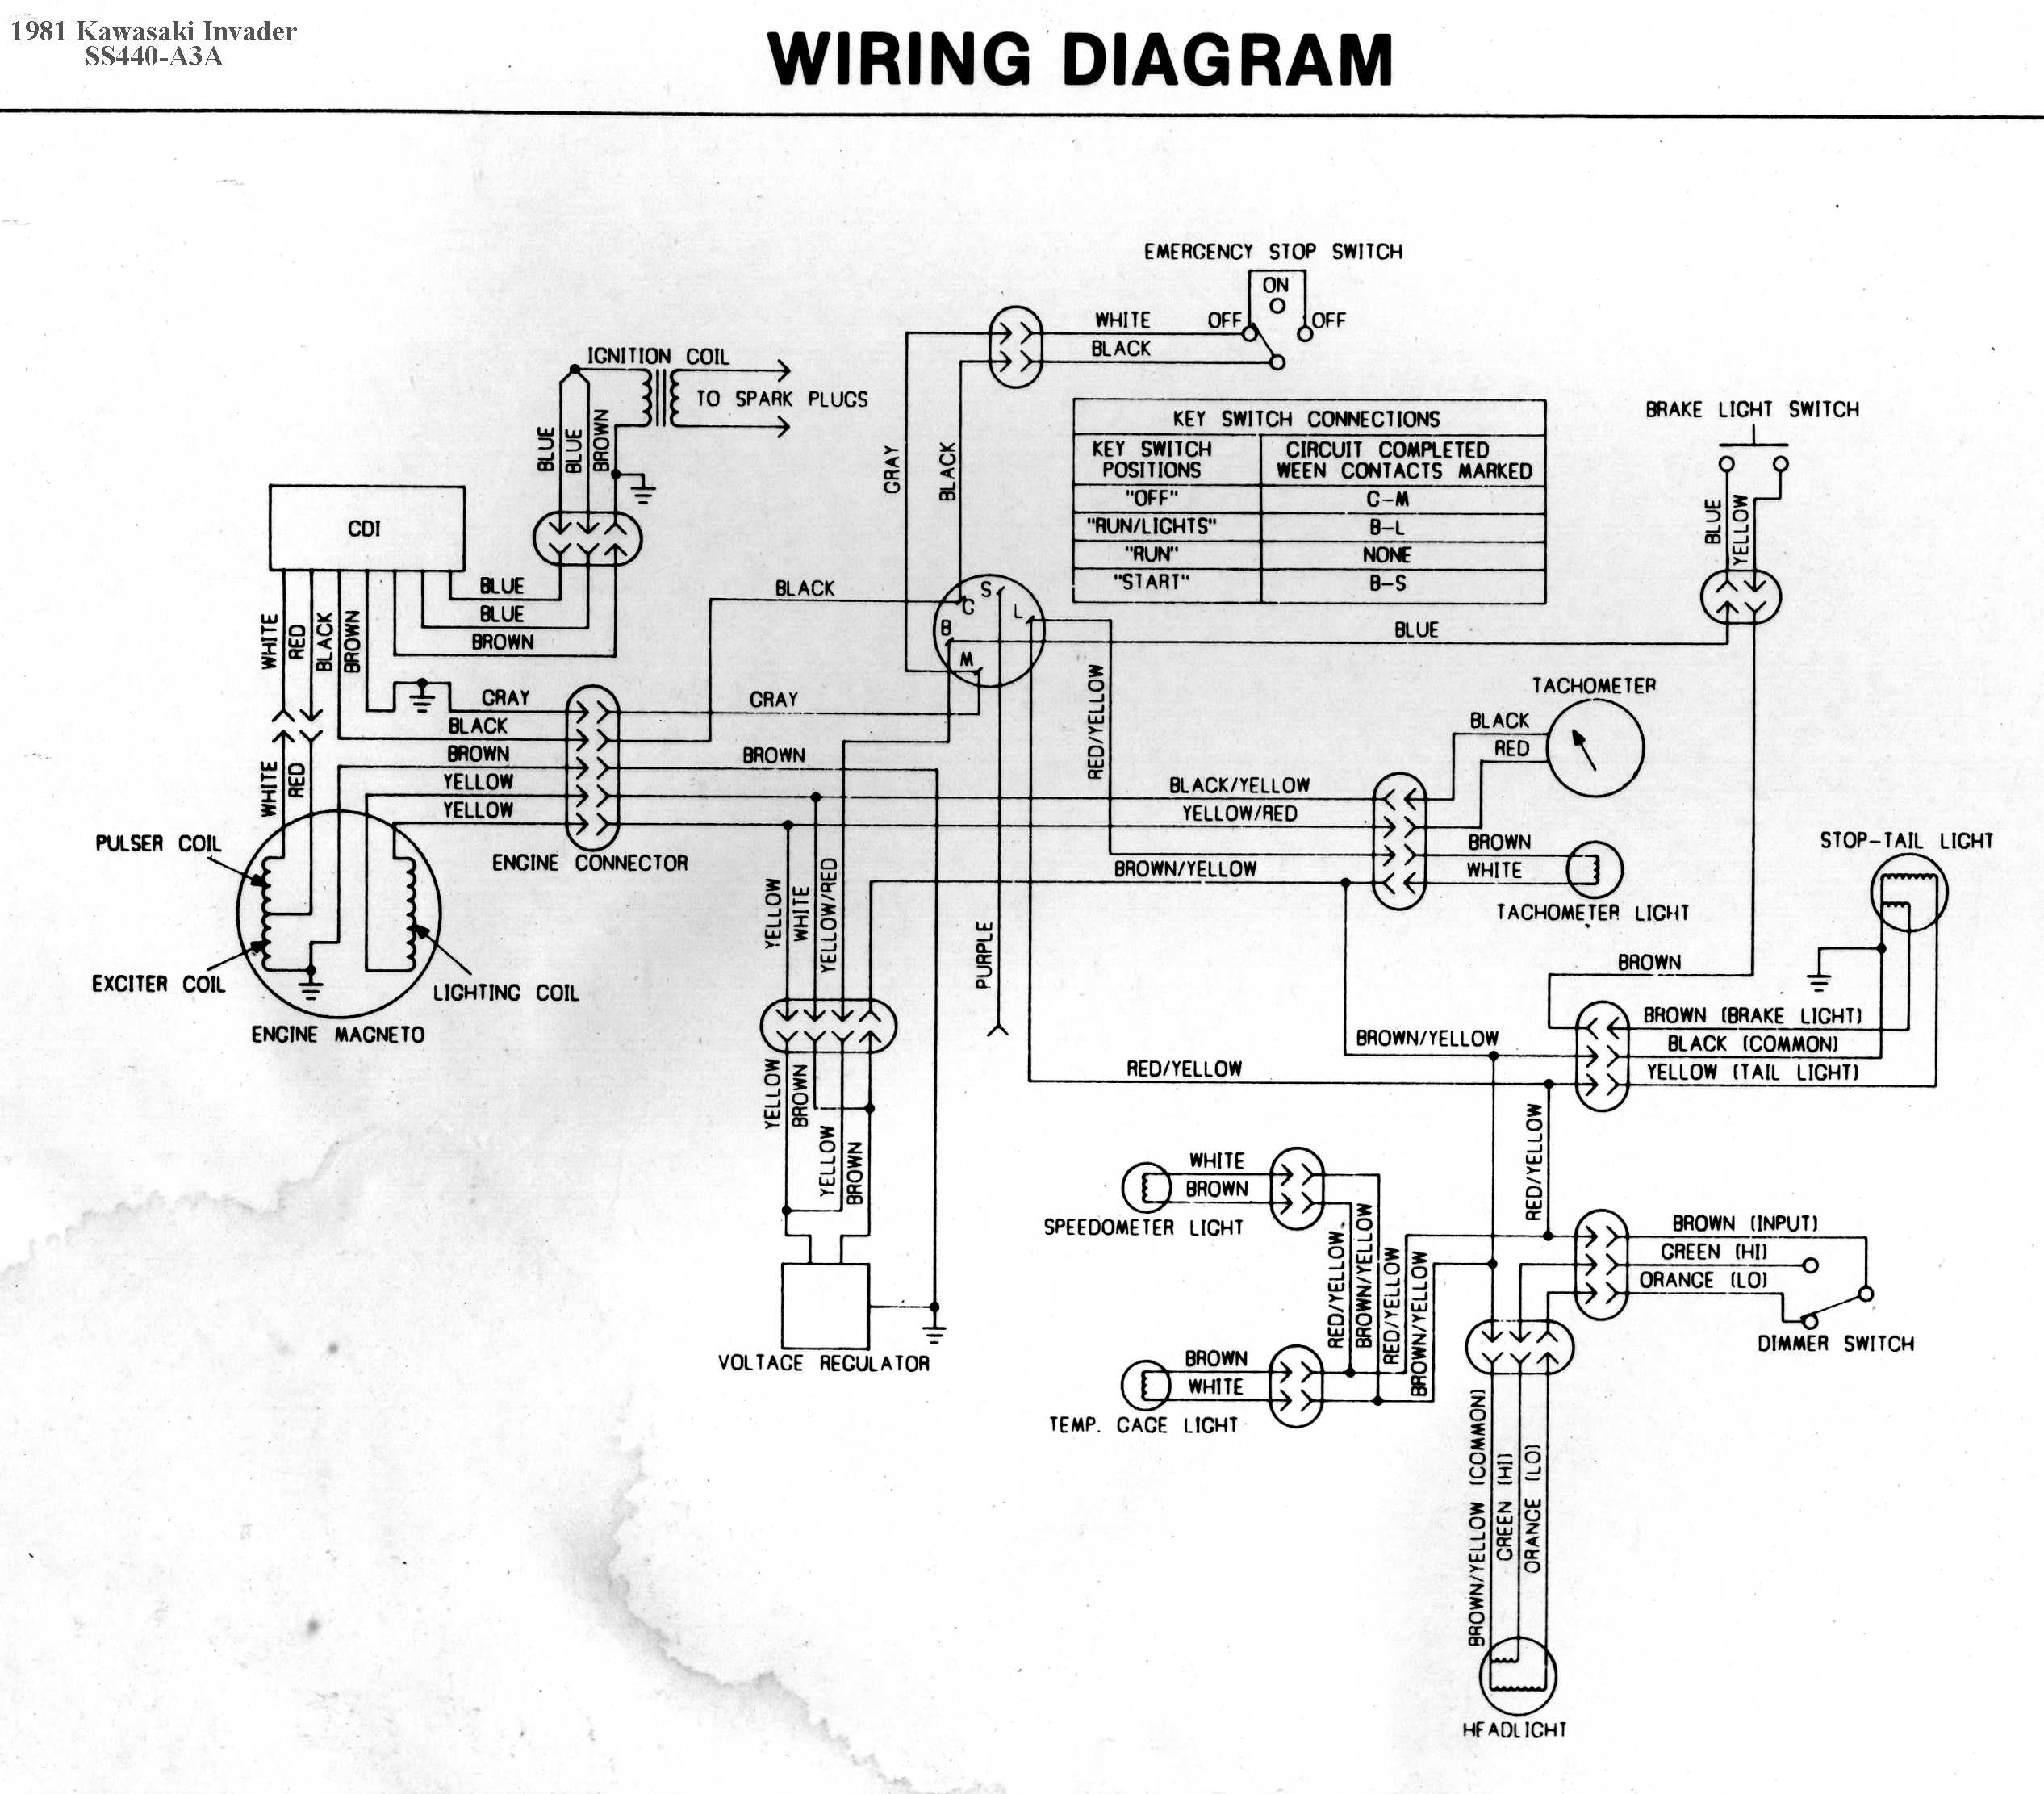 Ski Doo Wiring Diagrams - Fuse Box Diagram For 1994 Ford Mustang  oneheart.au-delice-limousin.fr | 1980 Moto Ski Wiring Diagram |  | Bege Place Wiring Diagram - Bege Wiring Diagram Full Edition